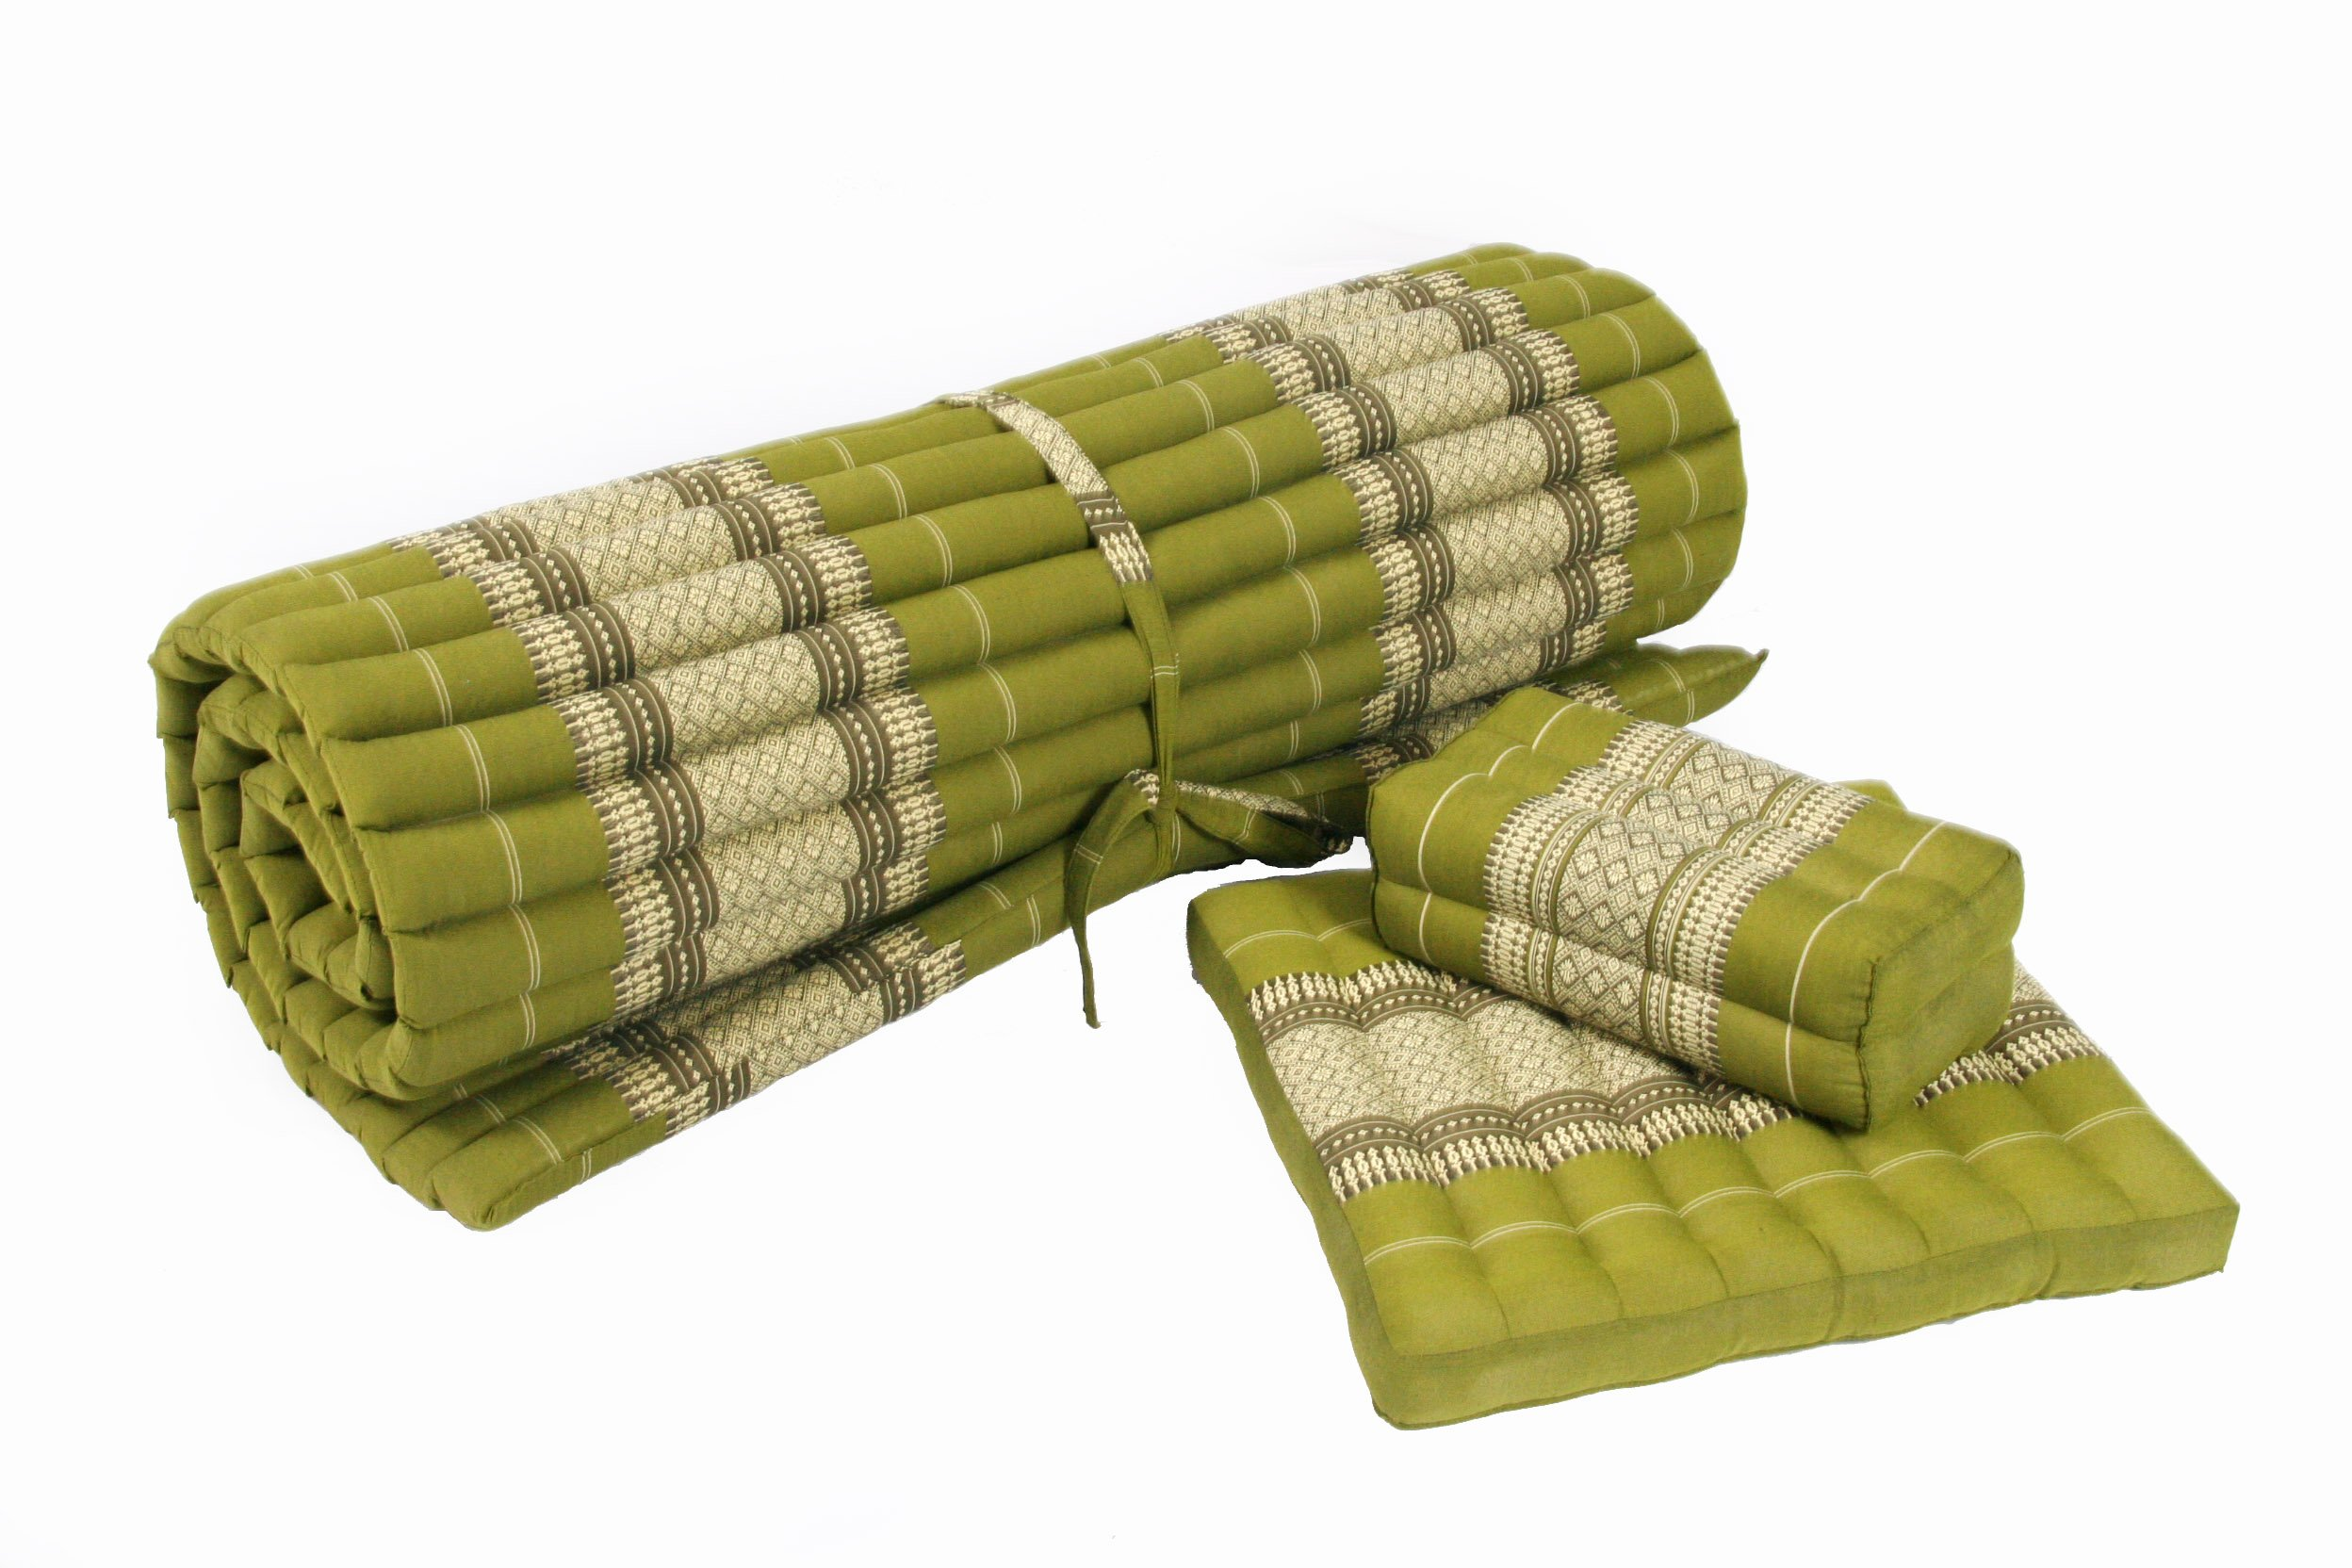 Yogaset I: Rollmat + 2 Cushions, all filled with 100% natural Kapok, Thai traditional Design Bamboogreen by Handelsturm